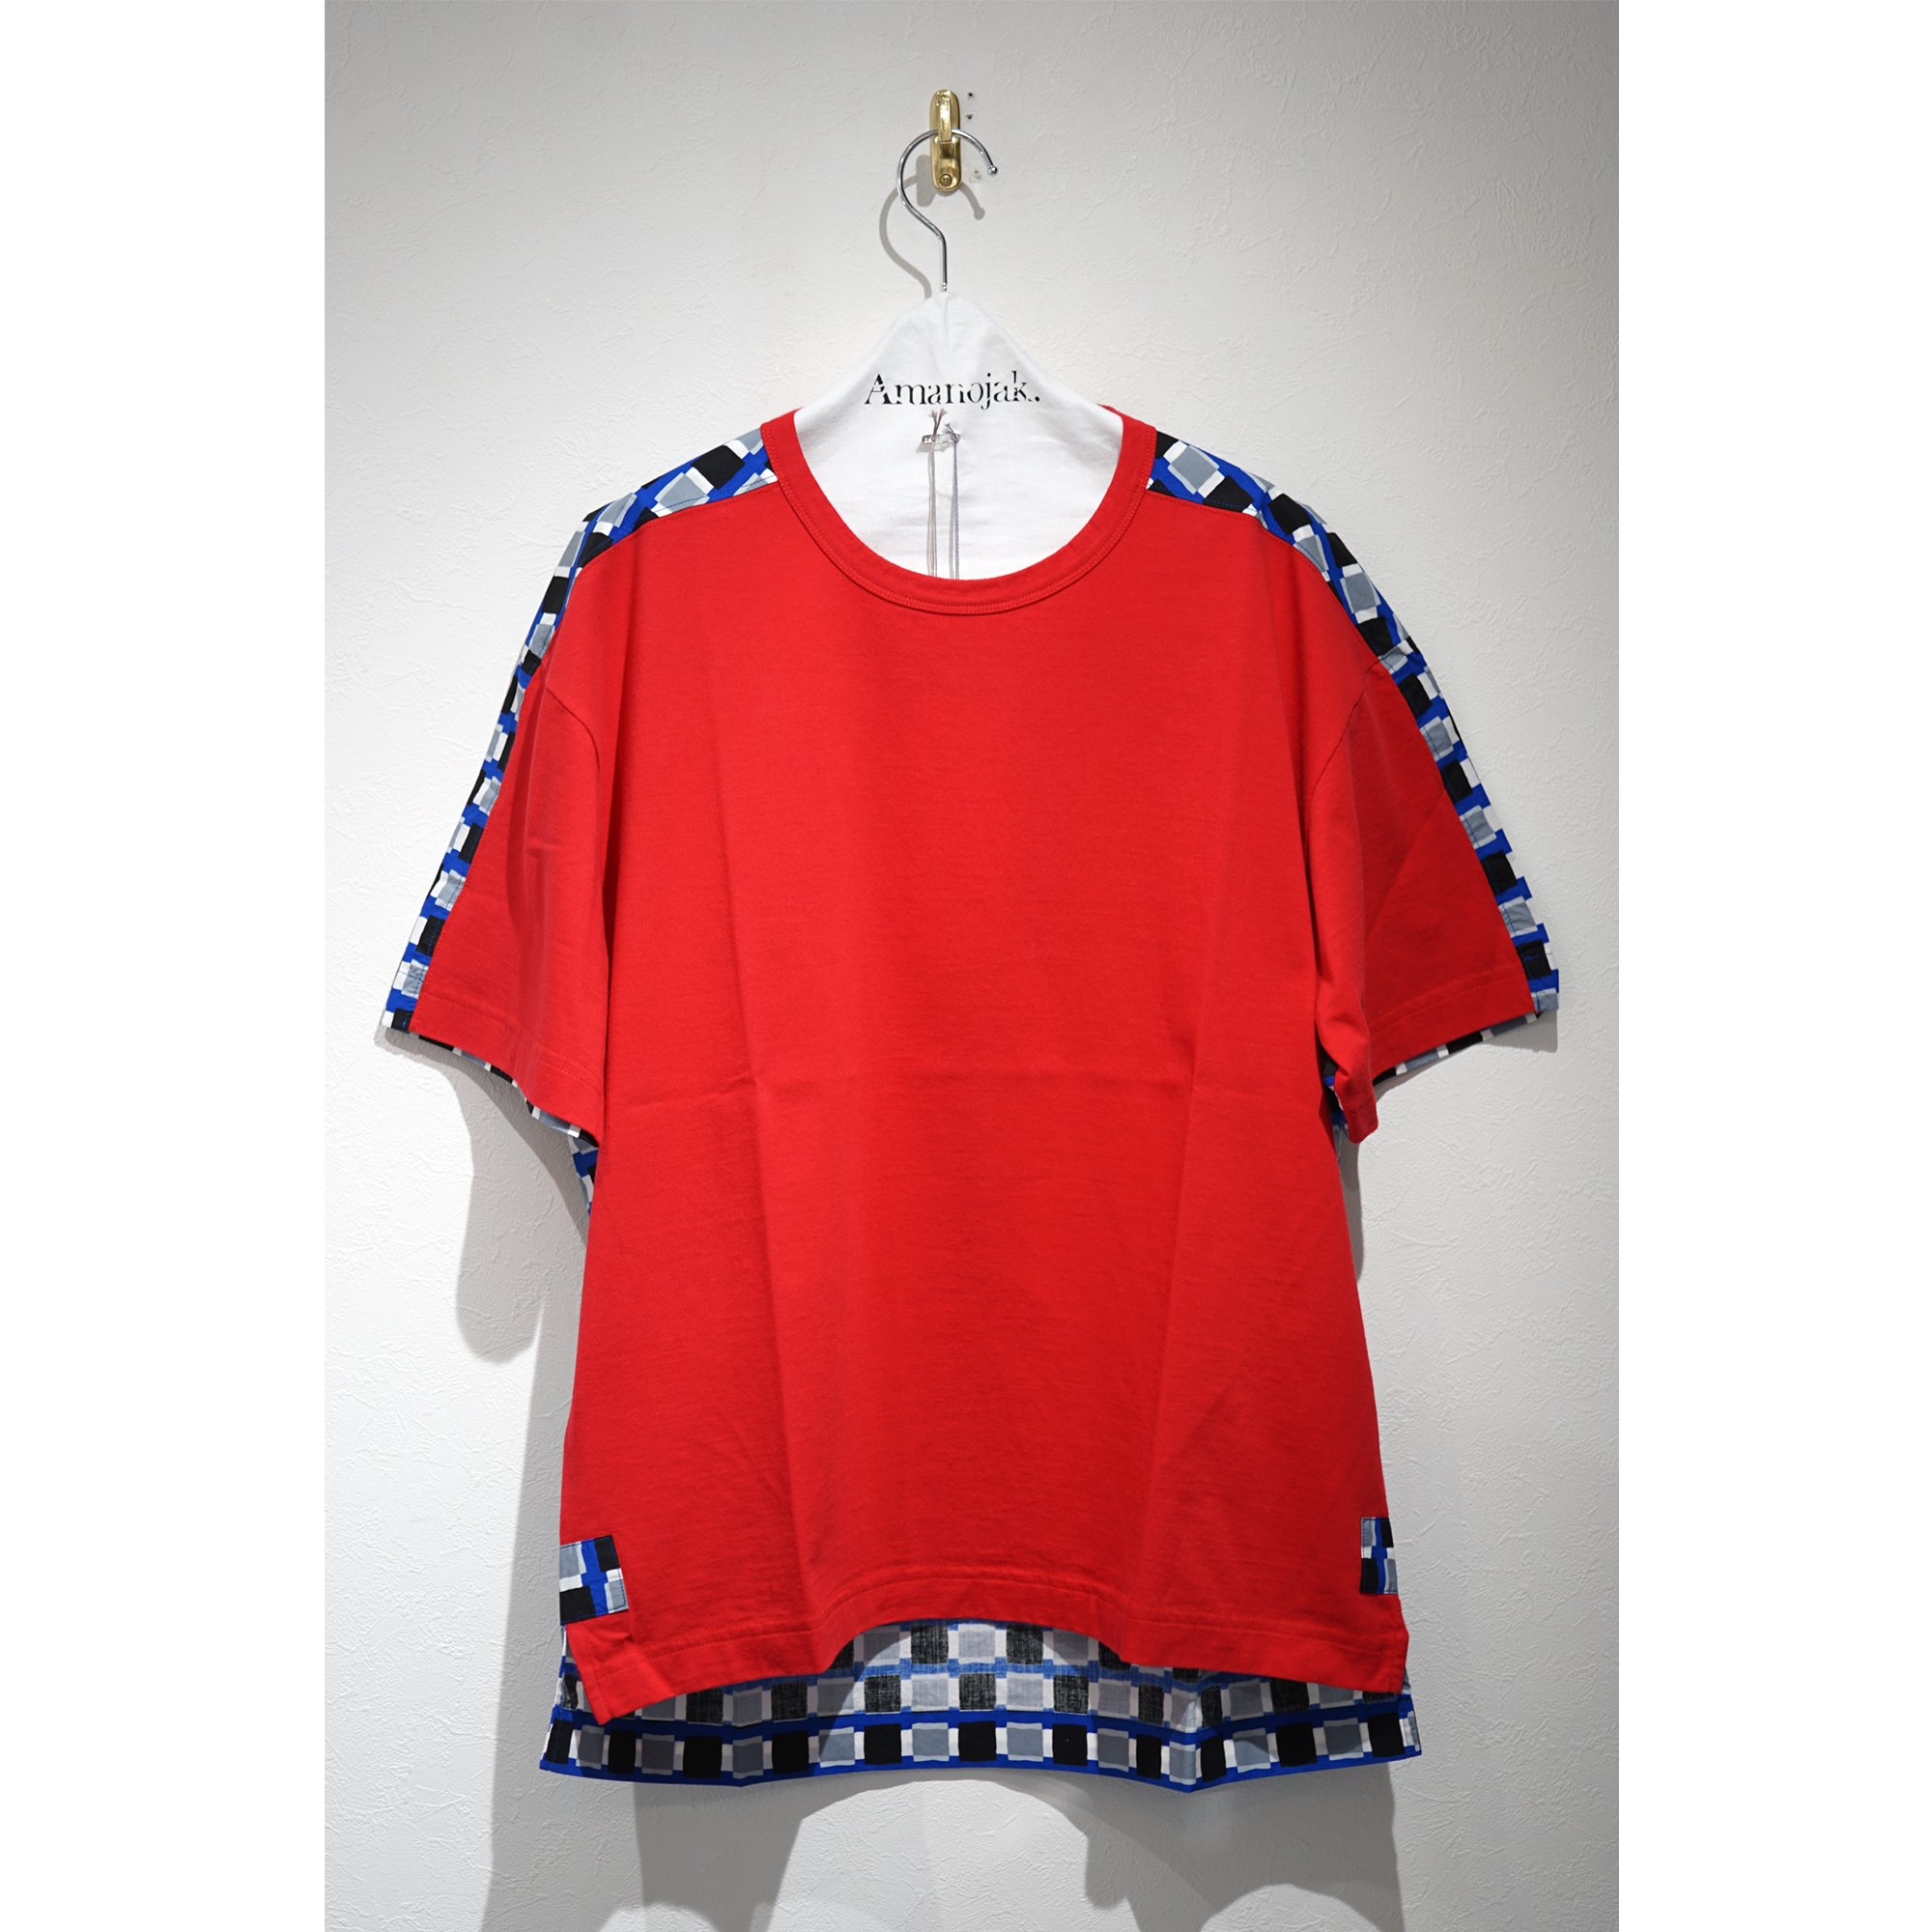 <img class='new_mark_img1' src='https://img.shop-pro.jp/img/new/icons23.gif' style='border:none;display:inline;margin:0px;padding:0px;width:auto;' />MARNI-JERSEY×TEXTILE COMBINATION T SHIRTS RED*BLUE<br>(在庫なし)